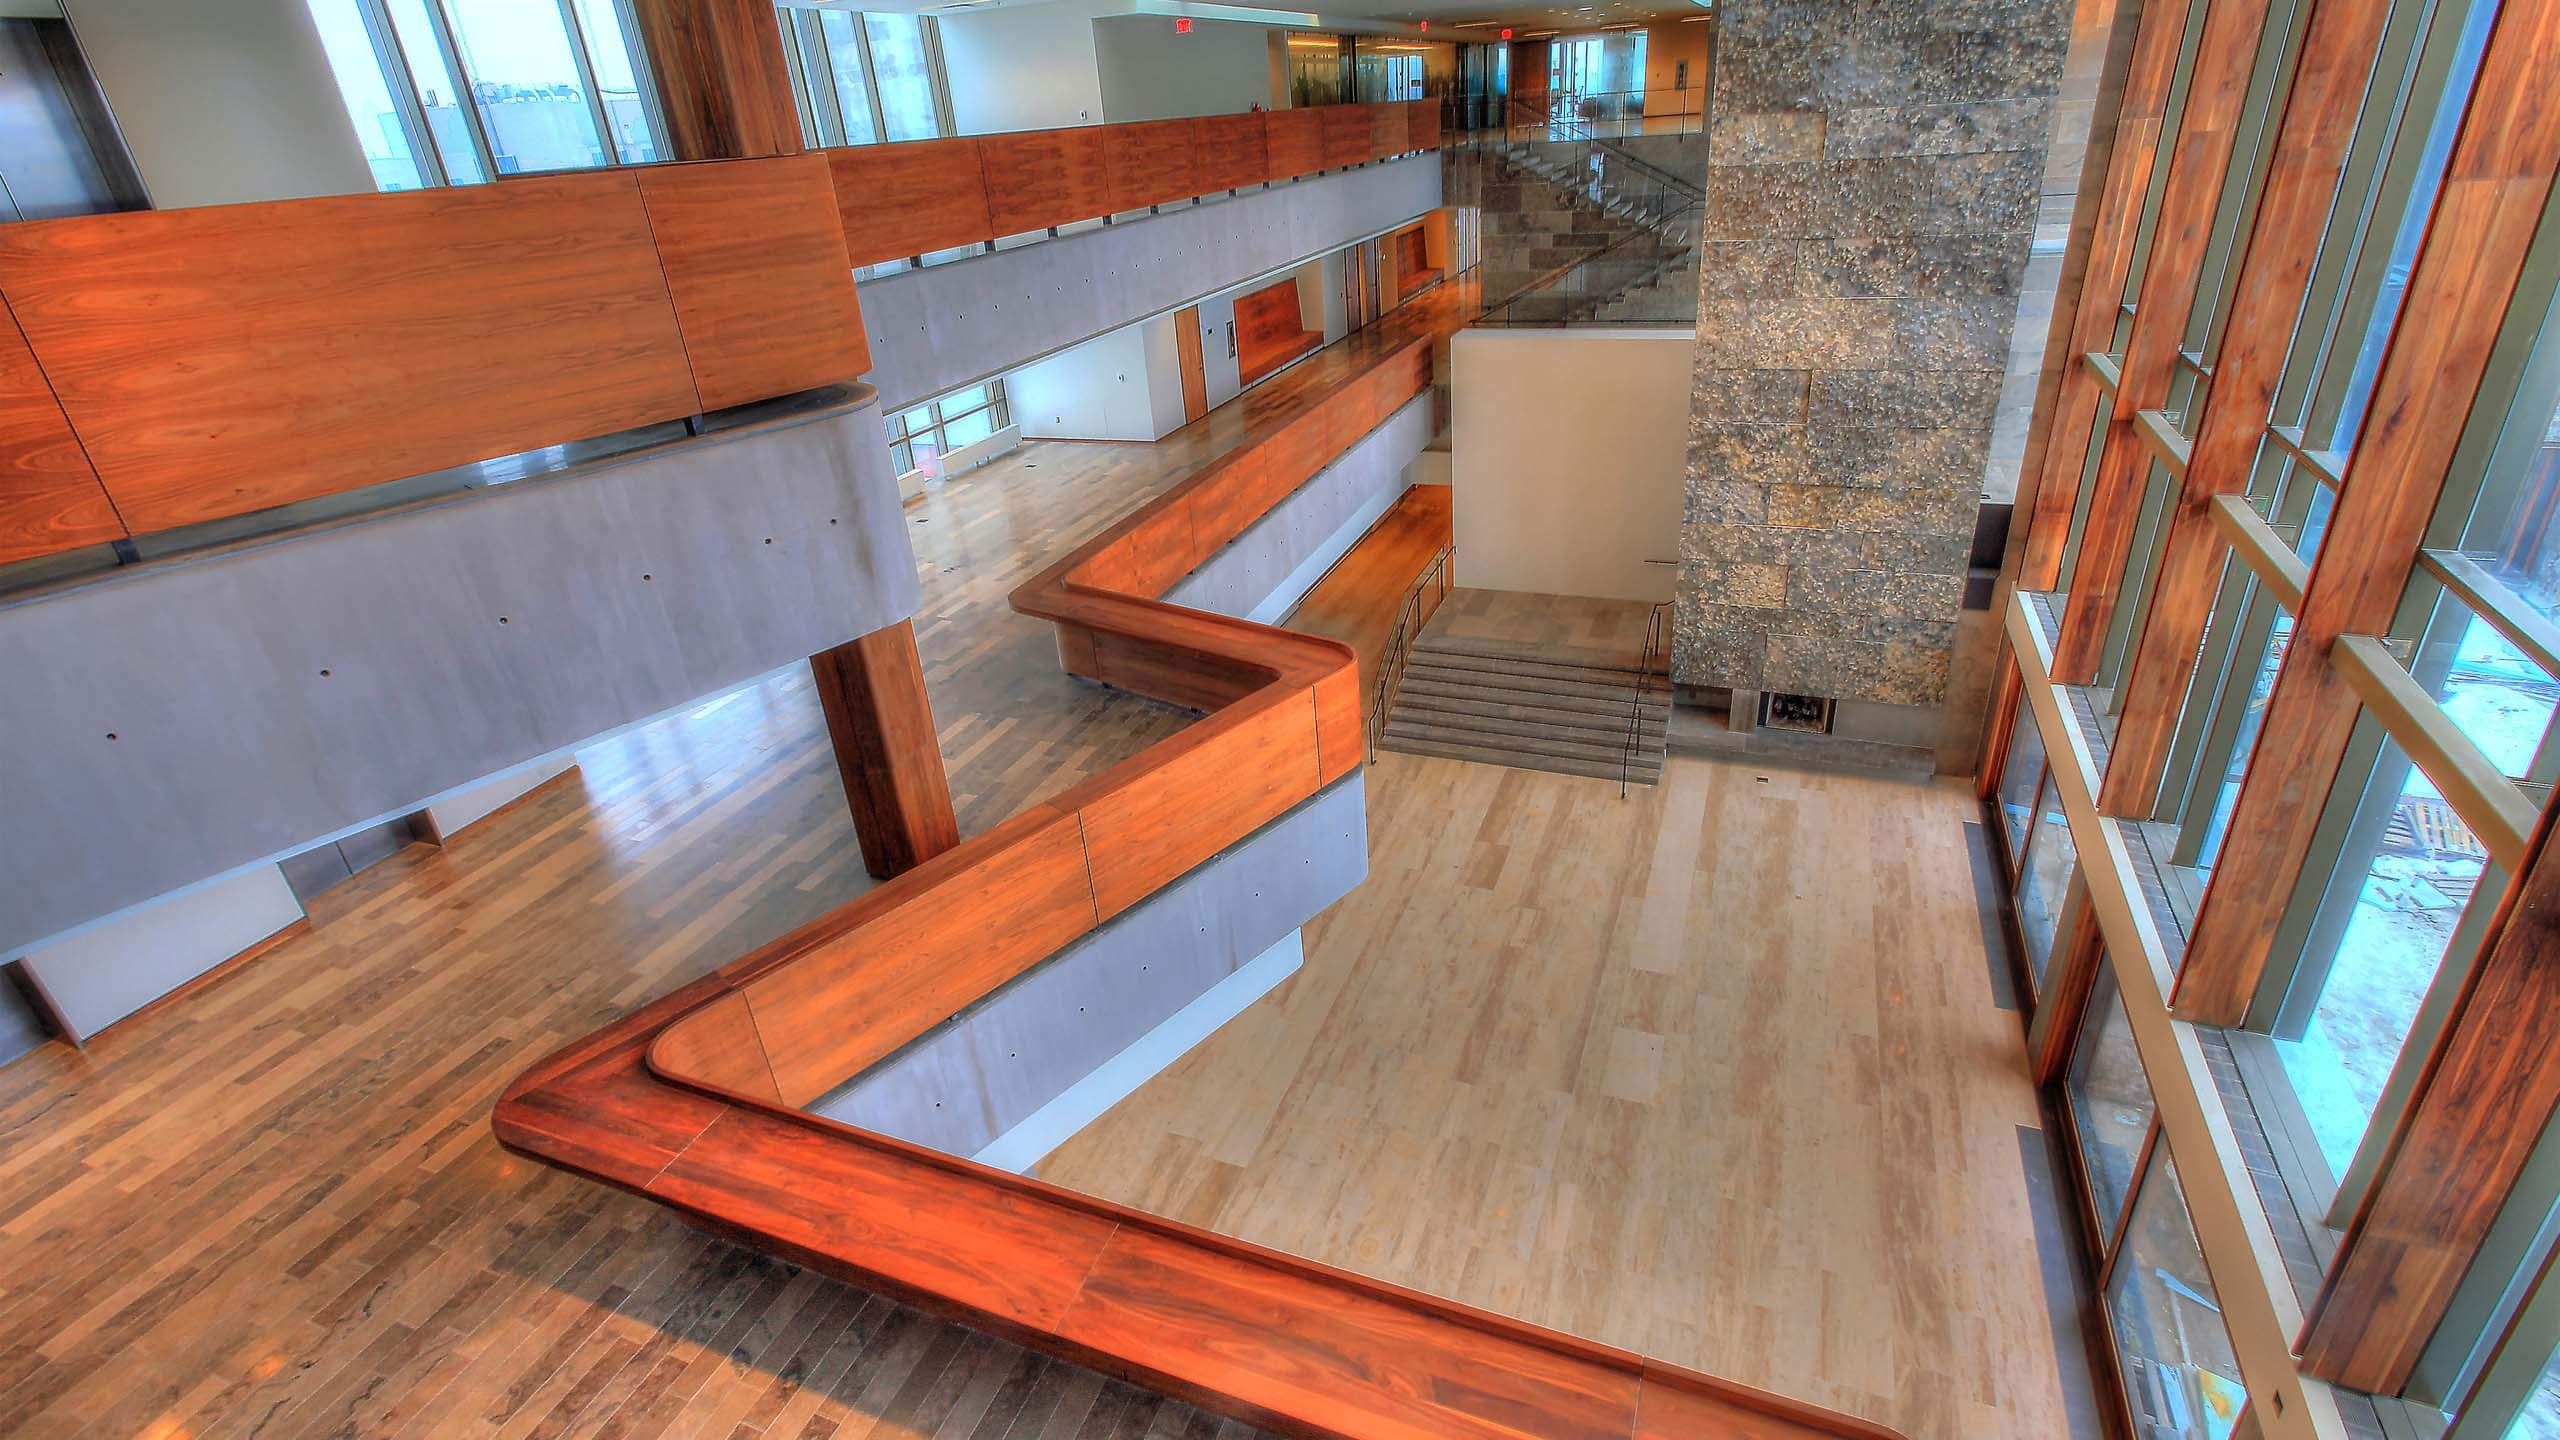 Ivey school of business london ontario architectural for Compleet interieur